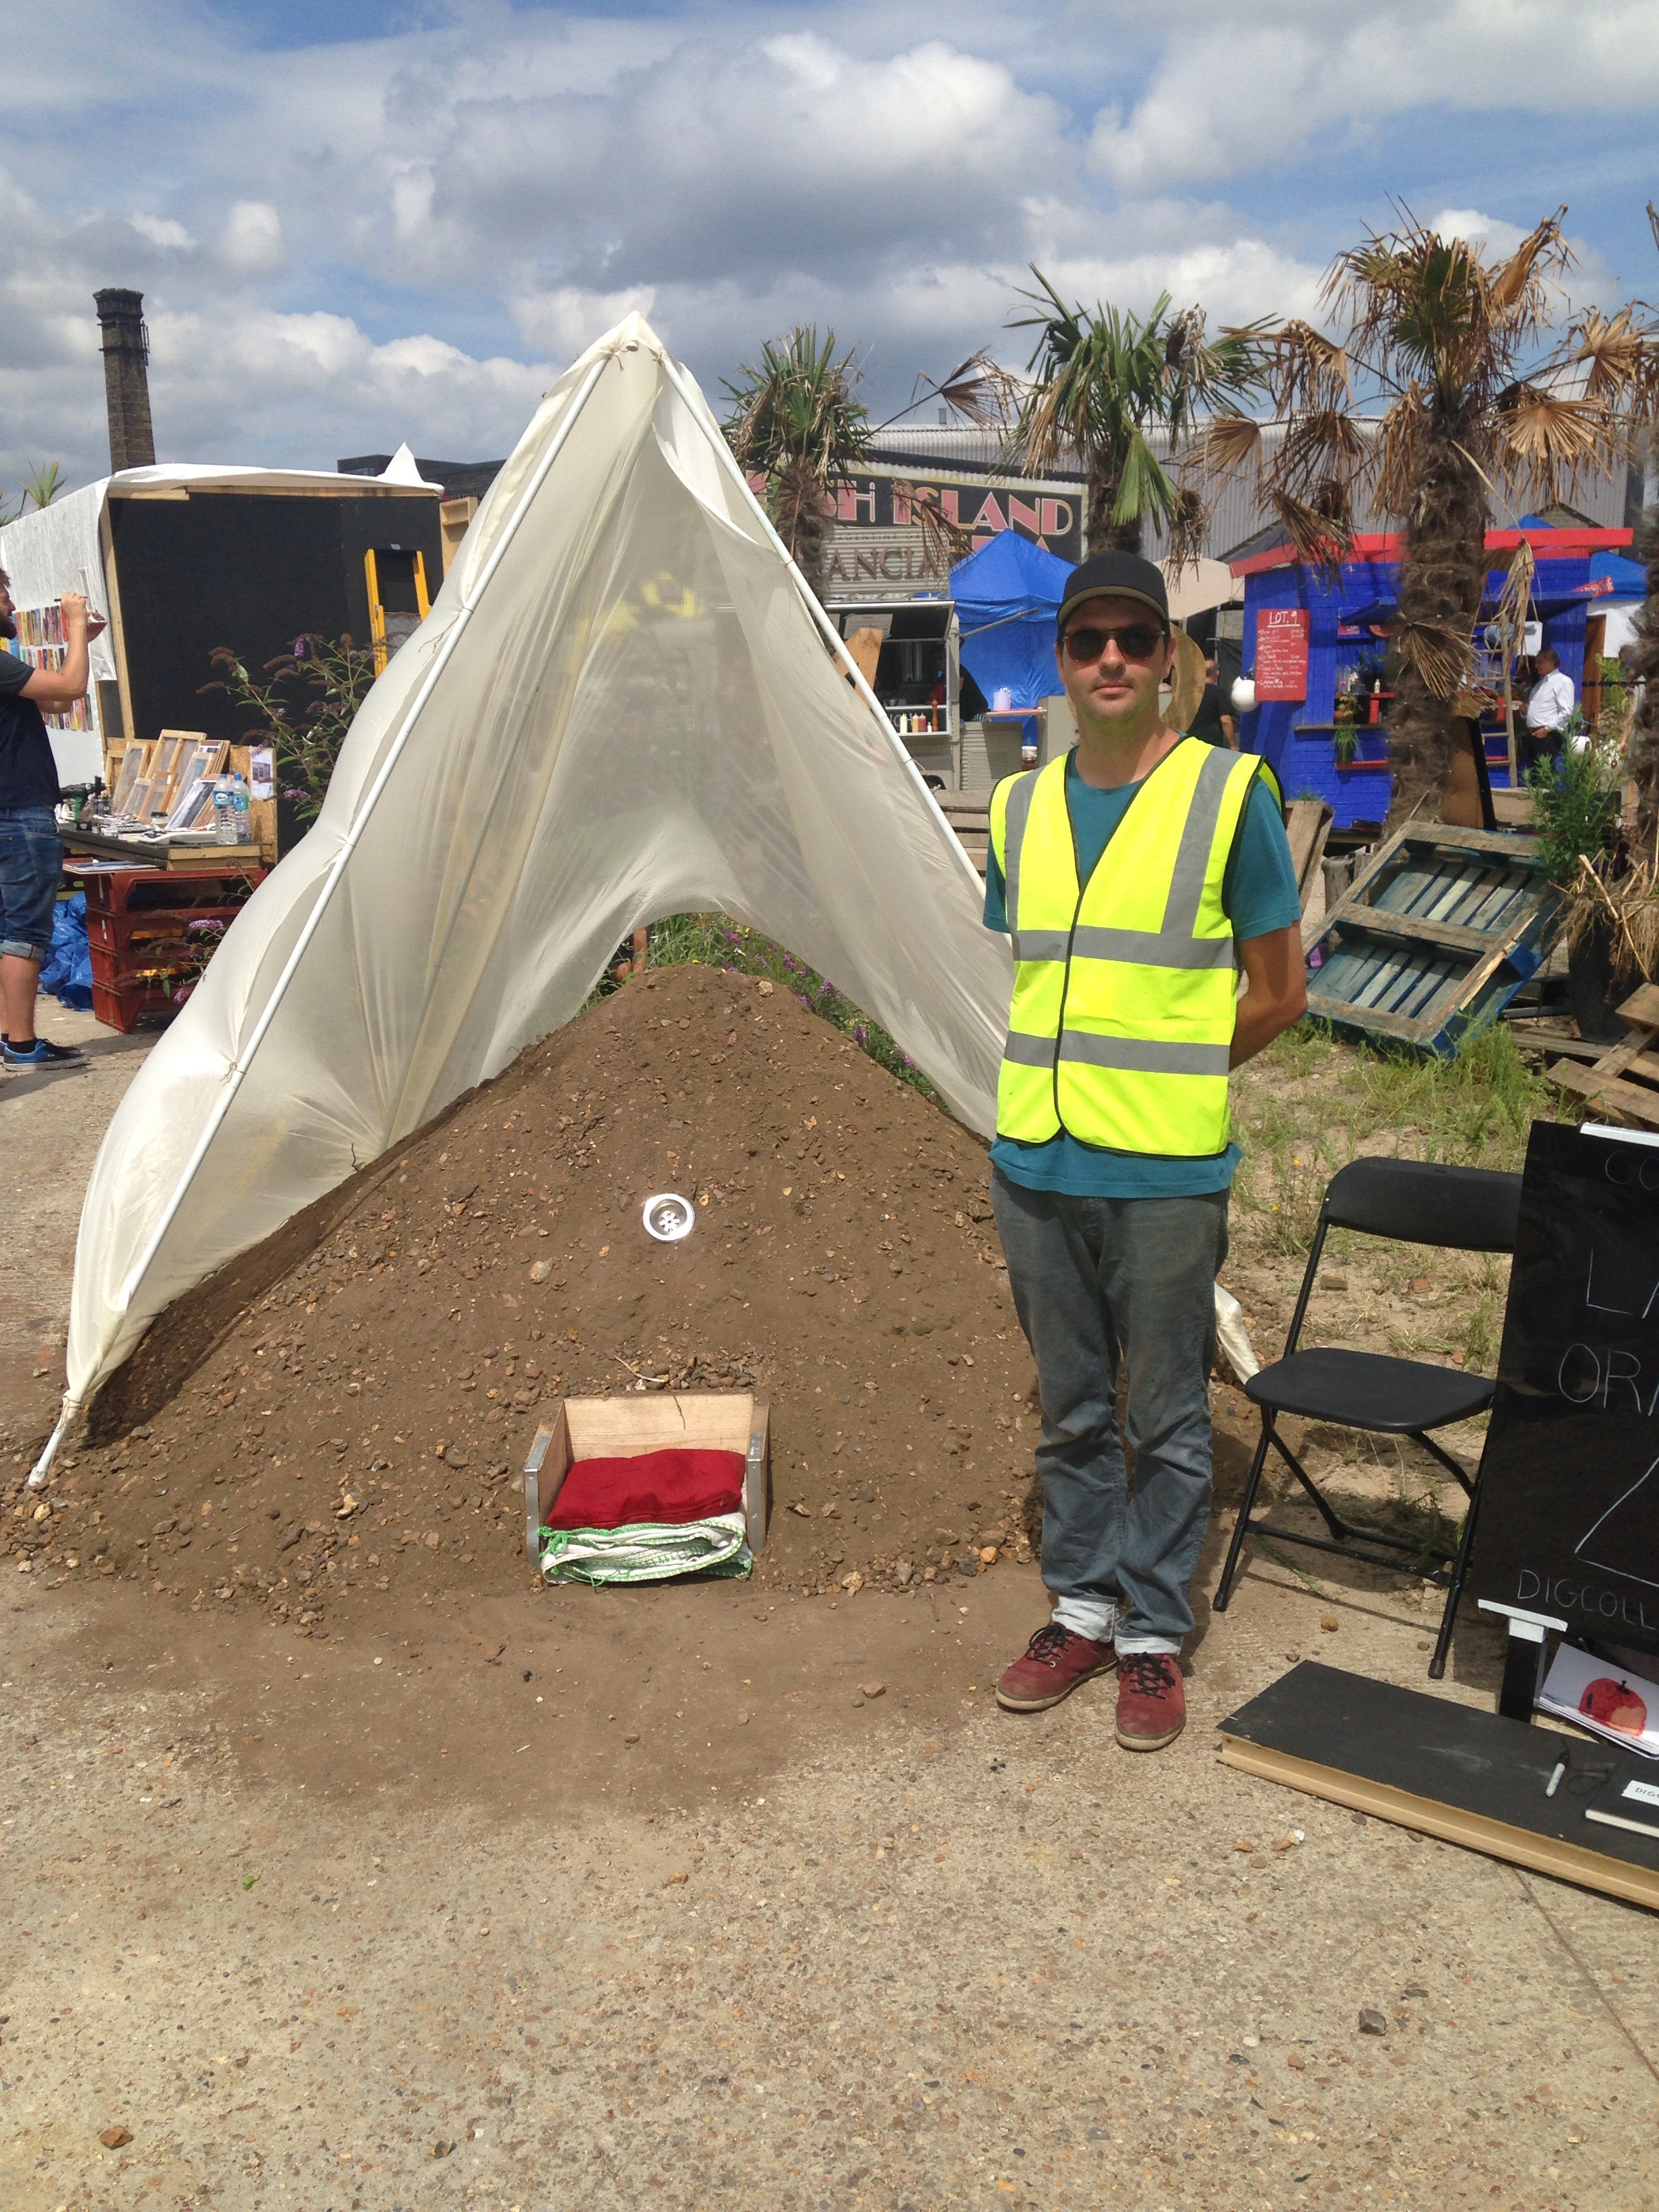 Dig Collective at Hackney Wick Art Festival giving a voice to soil from the hole.